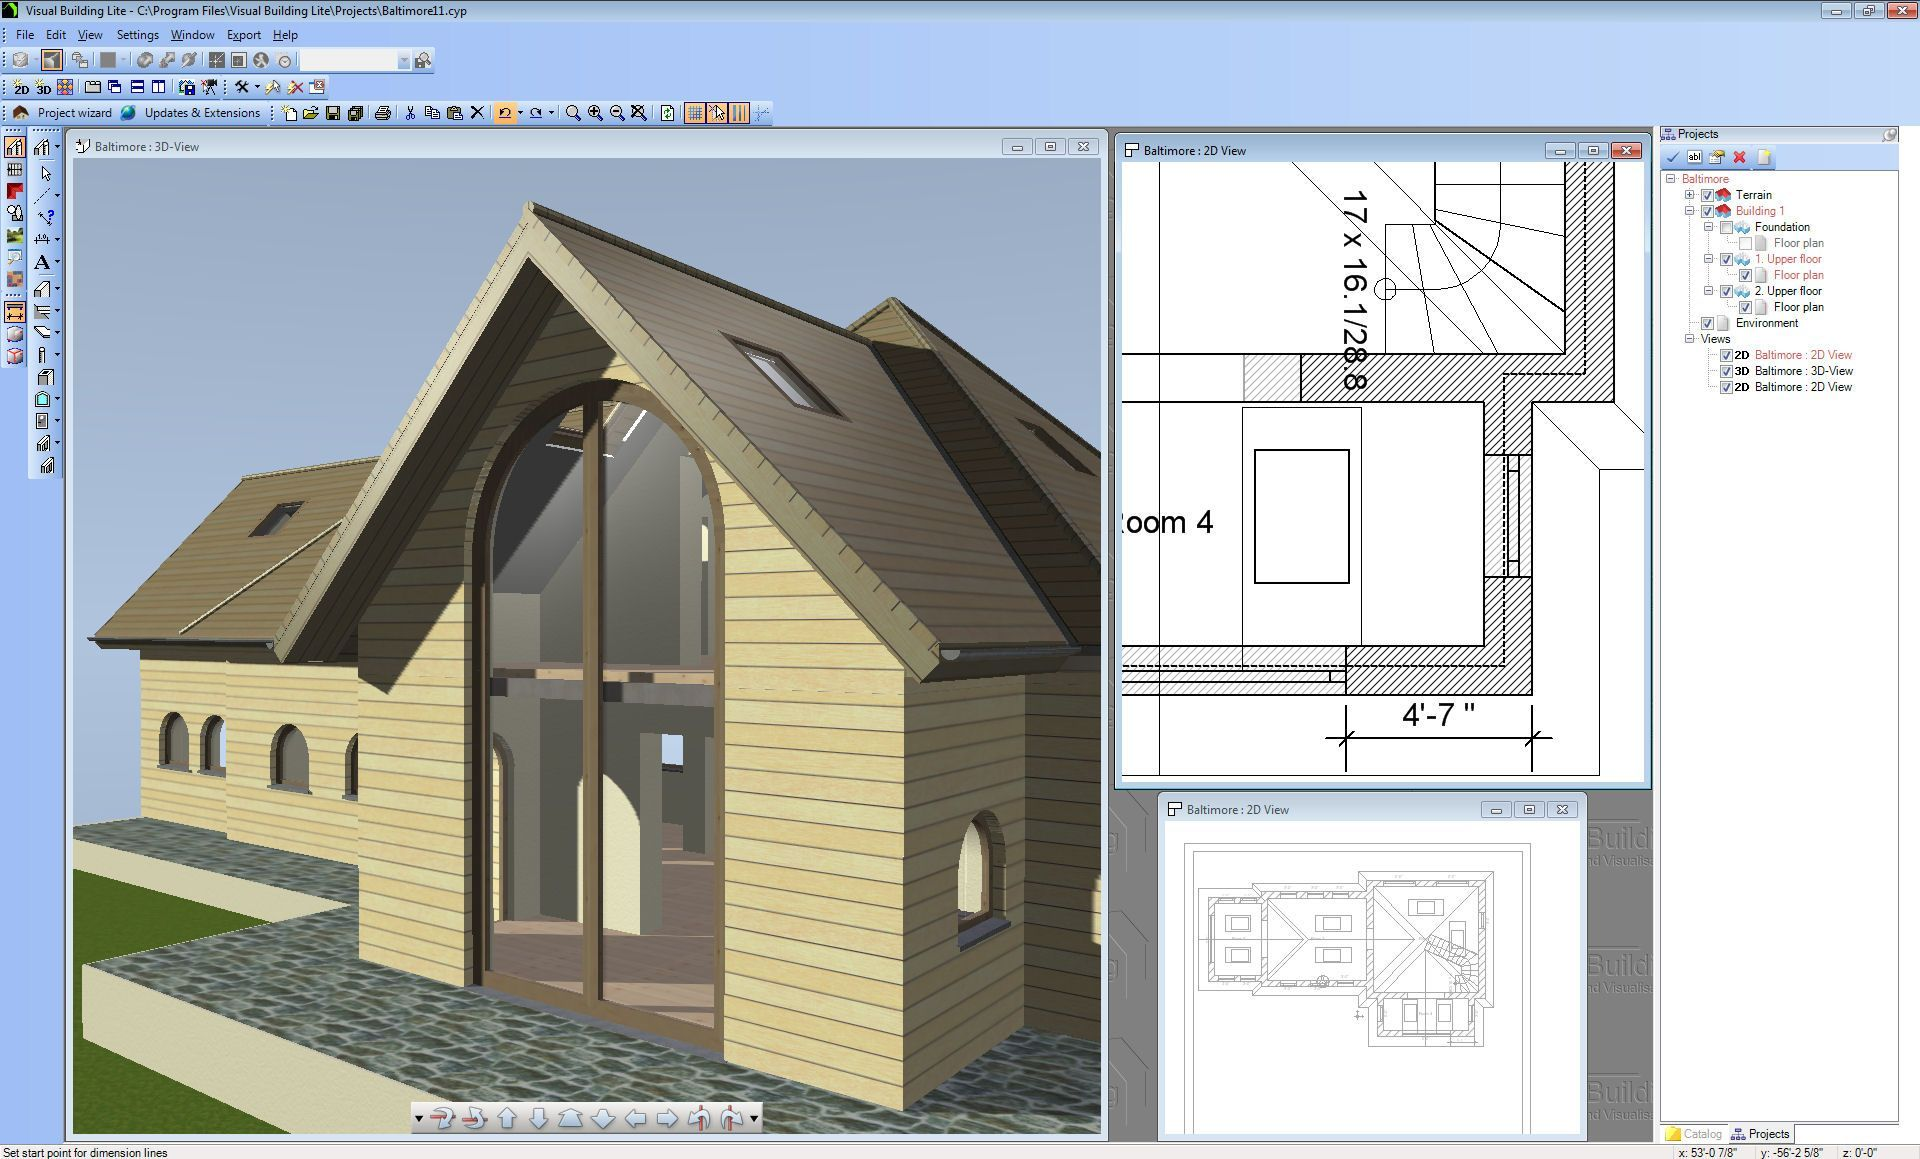 Best Home Design Software For In 2021 Best Home Design Software Home Design Software Facade Design